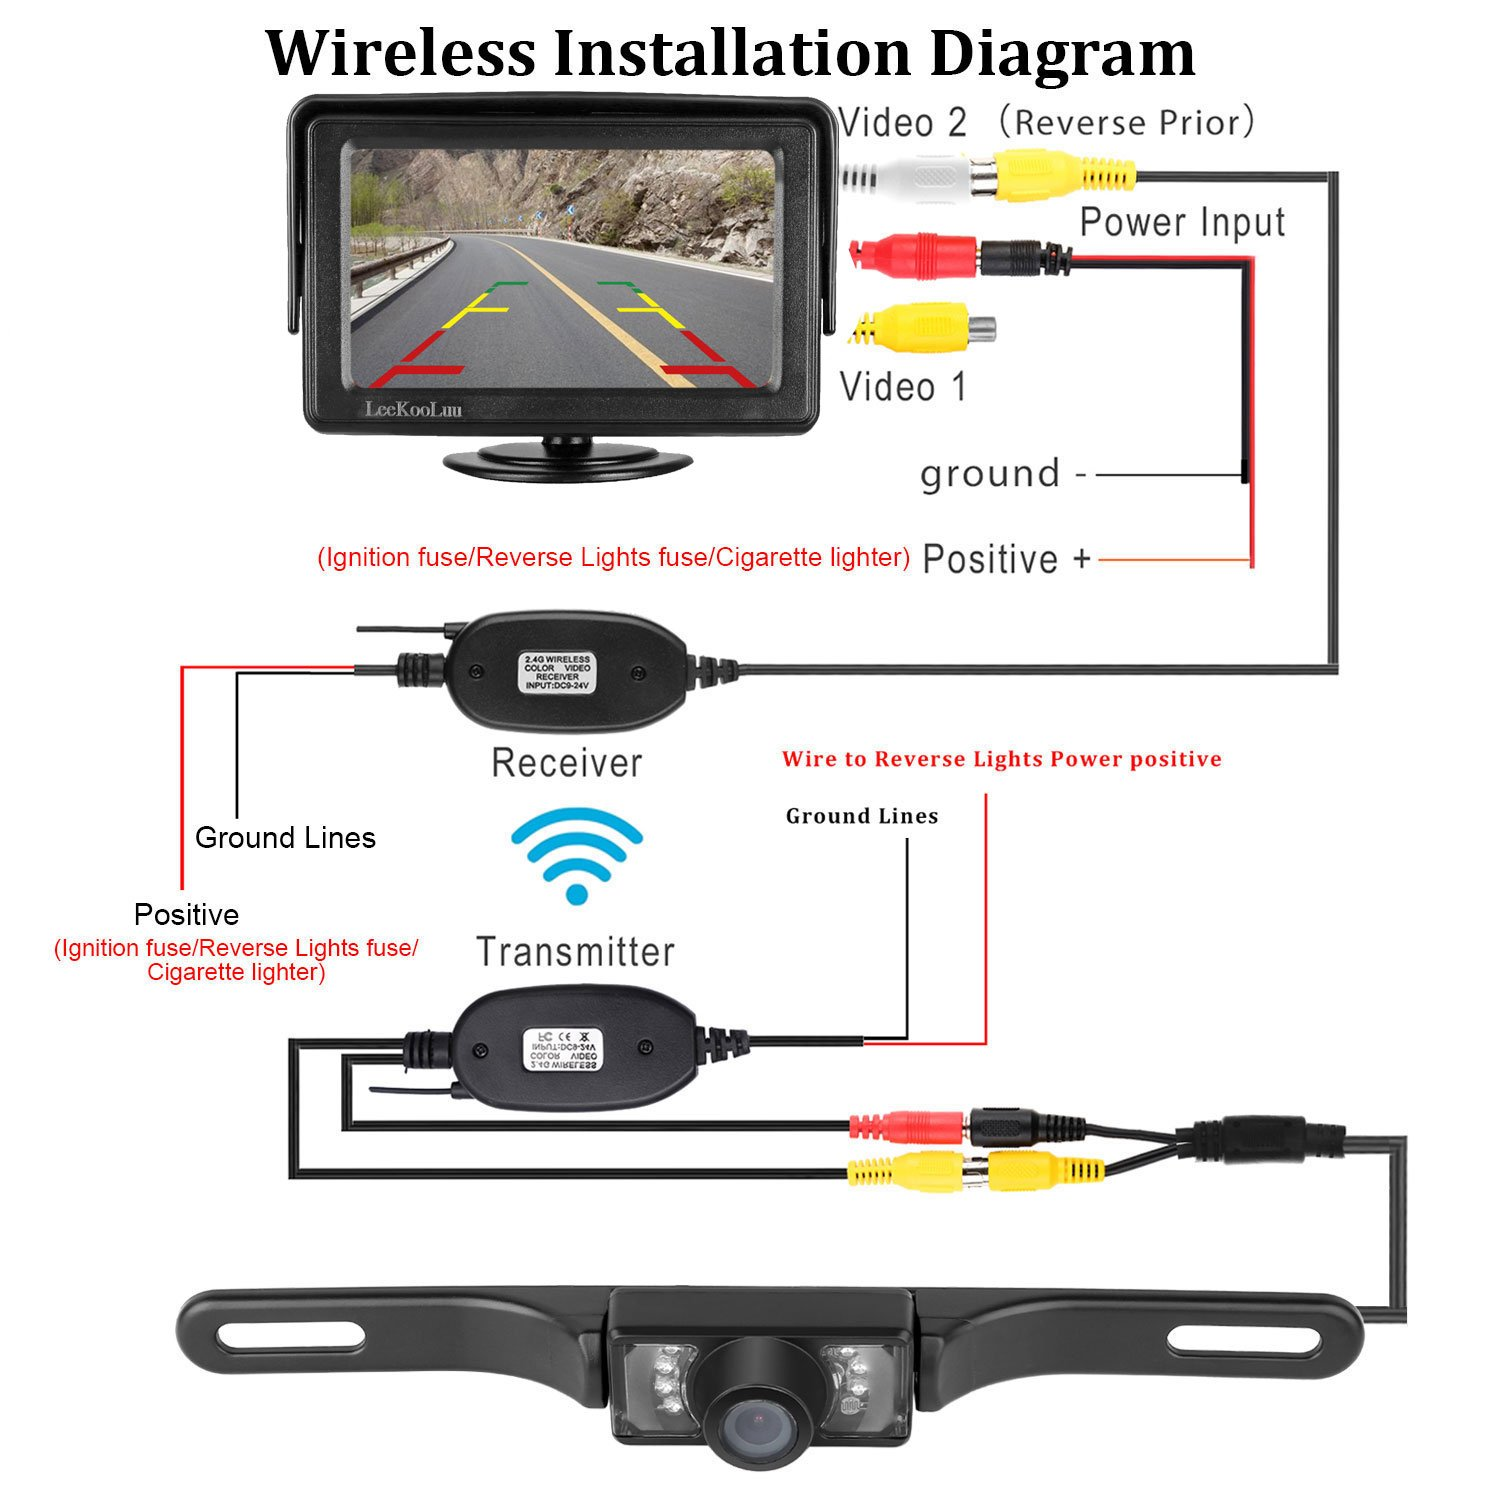 Astounding Wireless Reverse Camera Wiring Diagram Images - Wiring ...